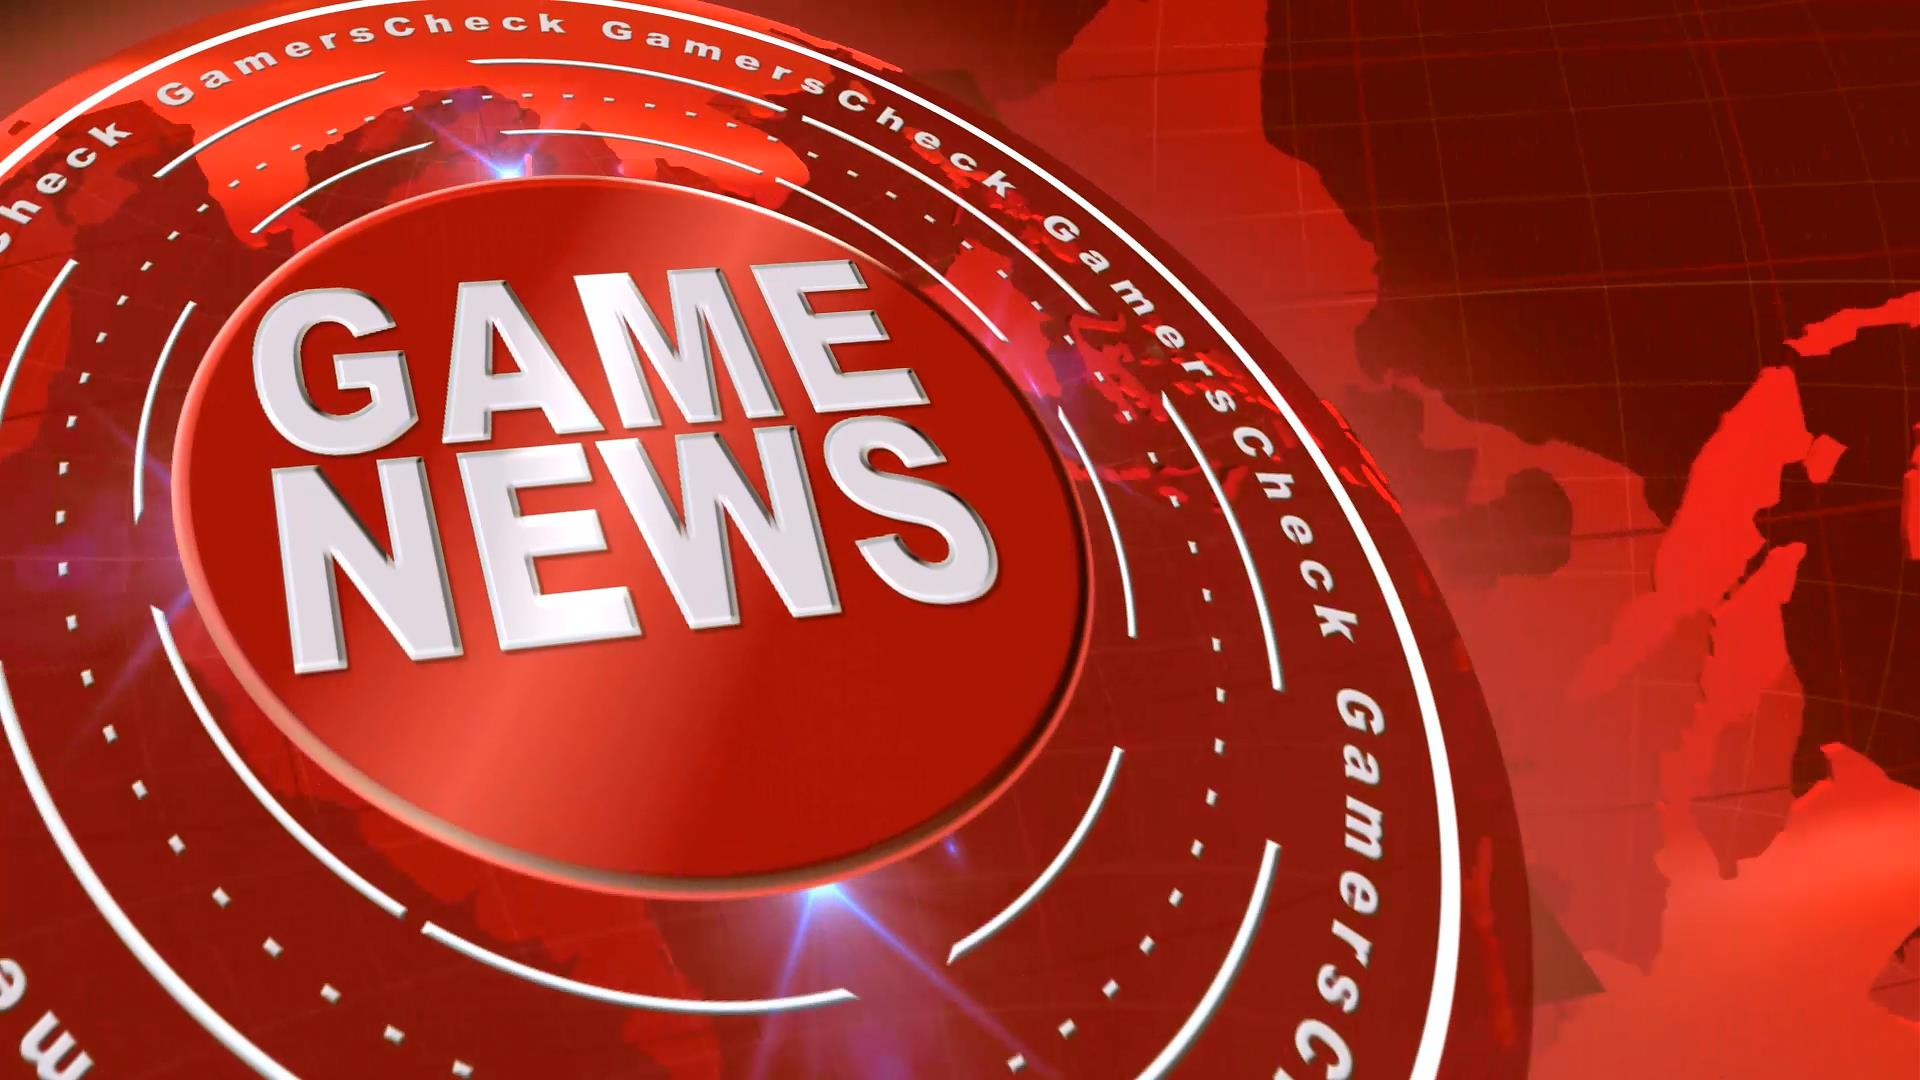 Get game news to be updated to games